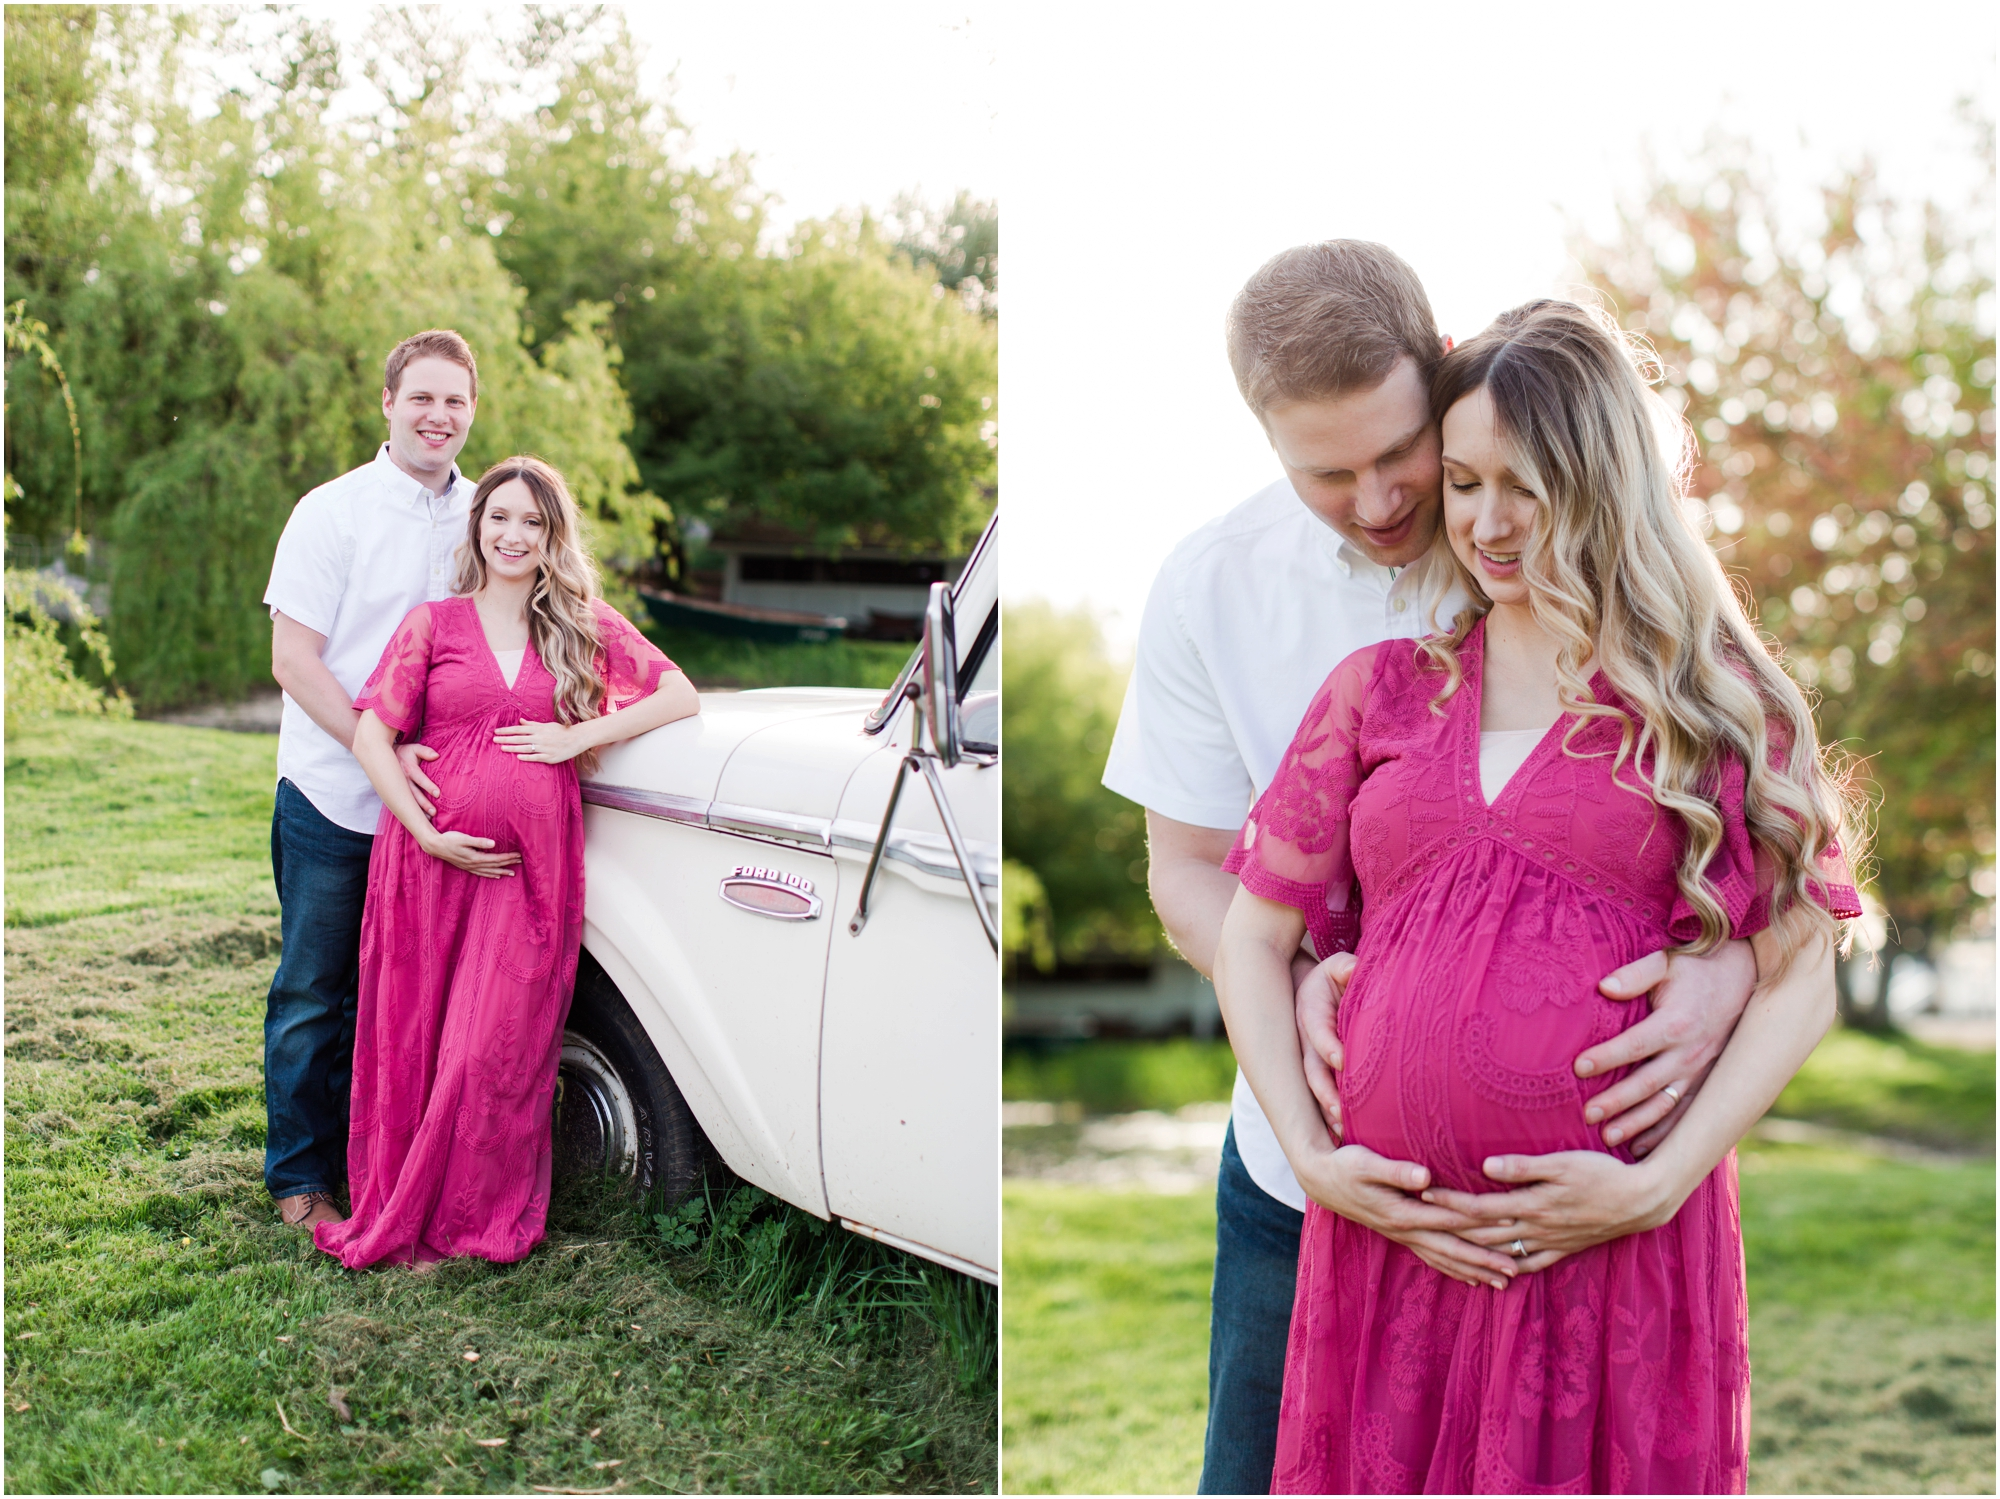 Wild Hearts Farm maternity shoot in Tacoma. Photos by Briana Calderon Photography based in the greater Seattle Tacoma Area._1187.jpg